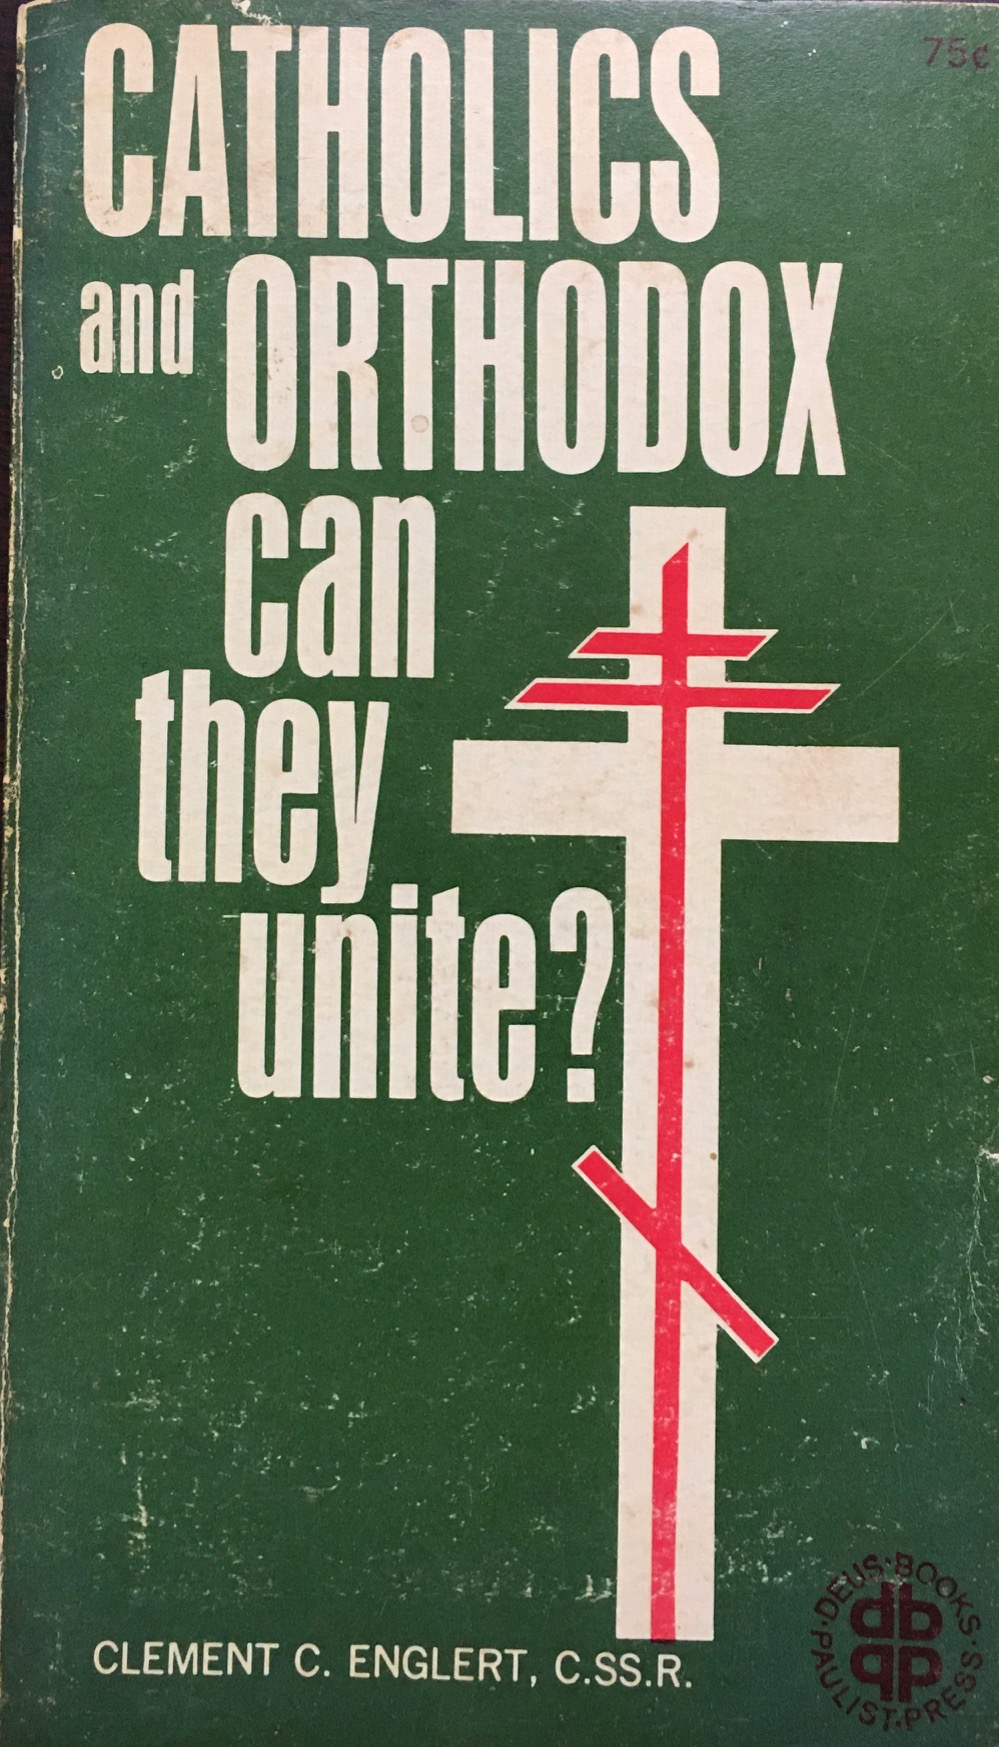 Image for Catholics and Orthodox Can They Unite?